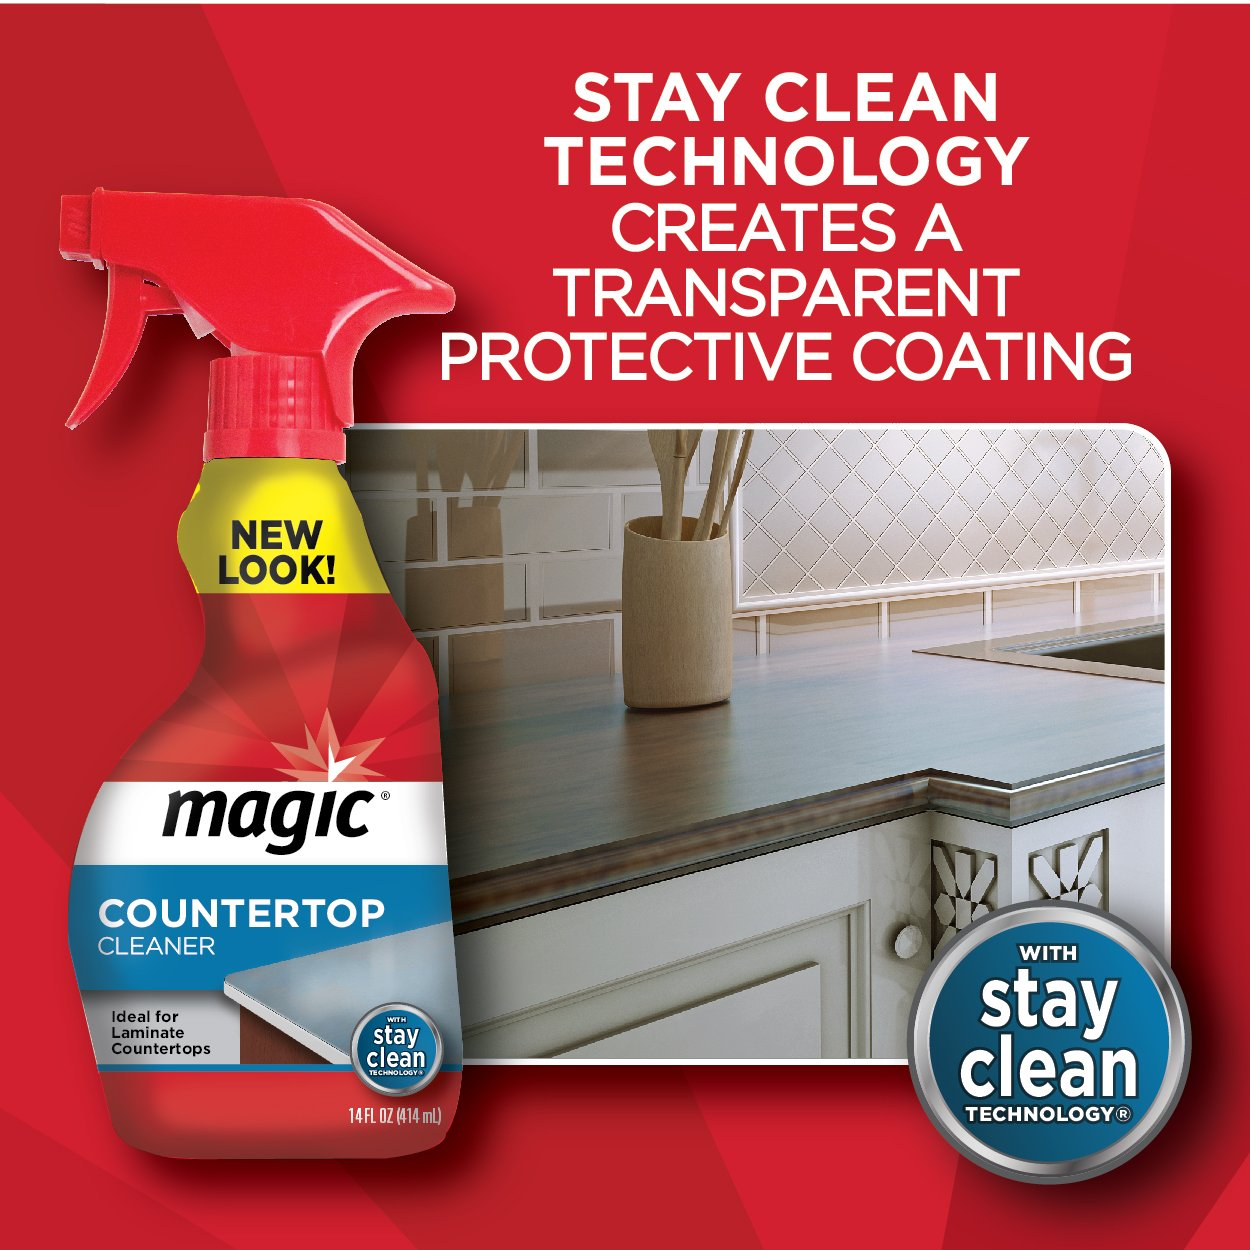 Cabinet Magic Cleaner Amazoncom Magic Countertop Cleaner 14 Fl Oz Health Personal Care